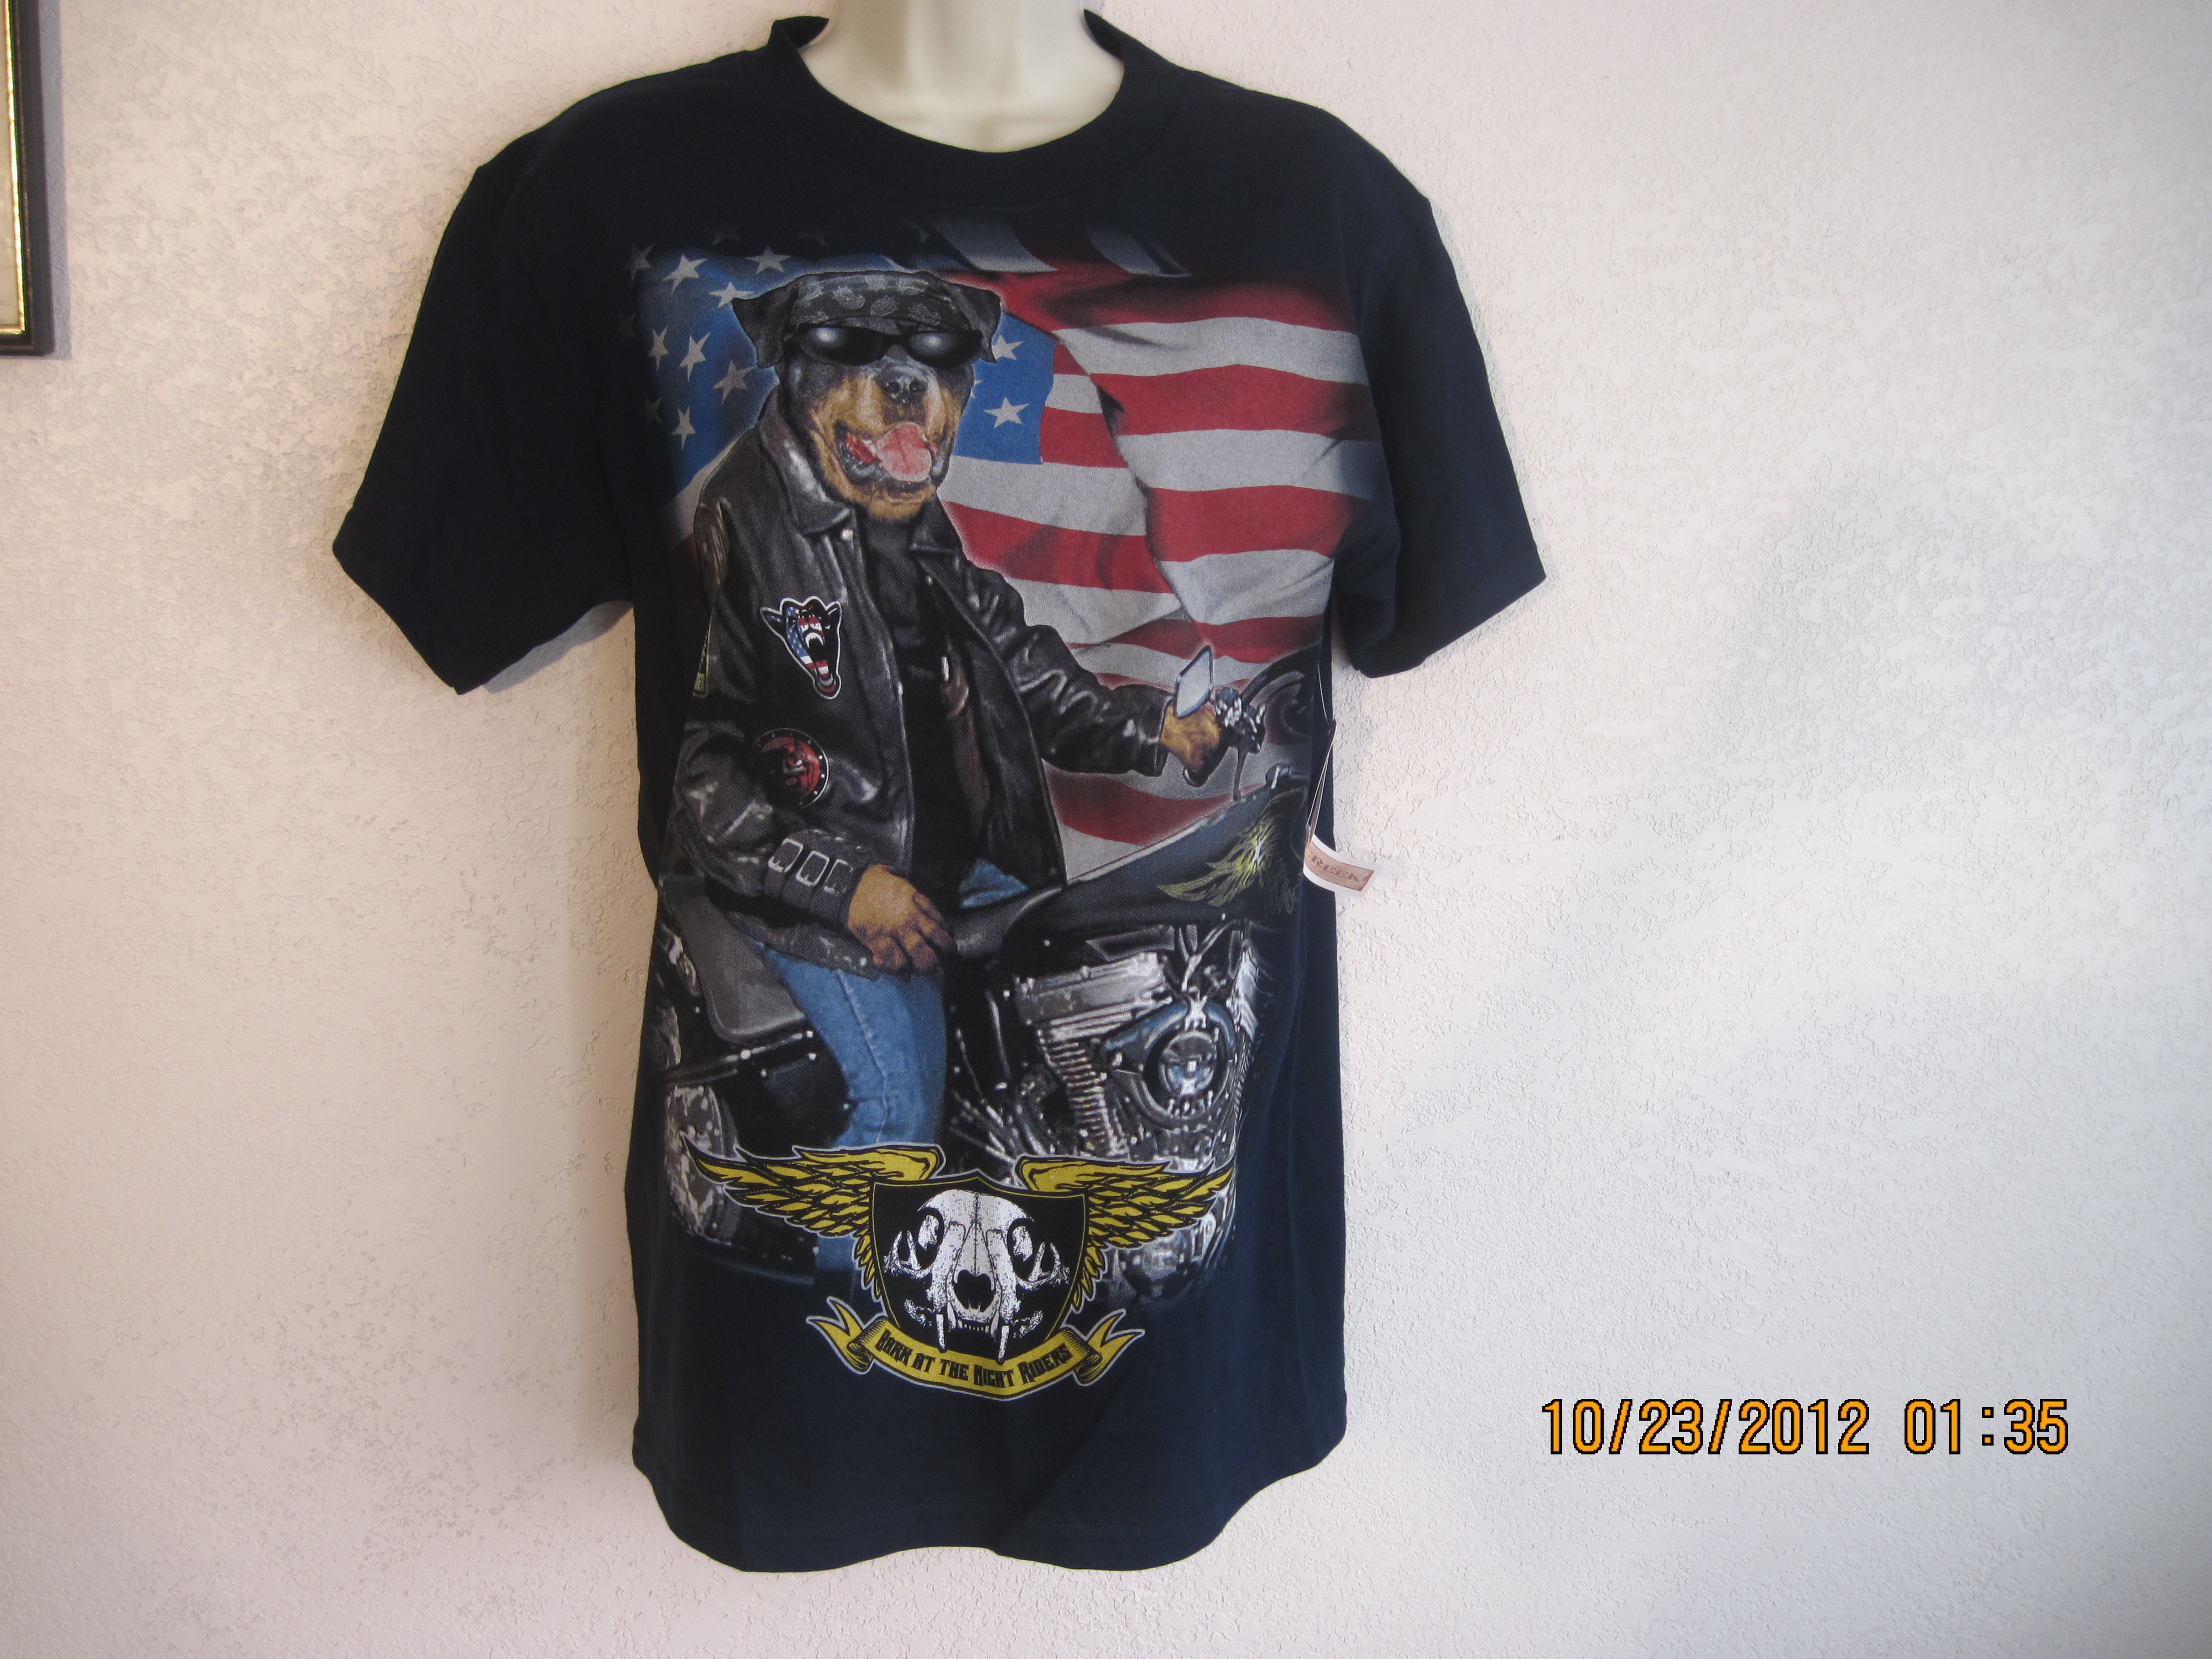 Hudson Creek Sz M T-Shirt Blue, Dog on Motorcycle with Flag